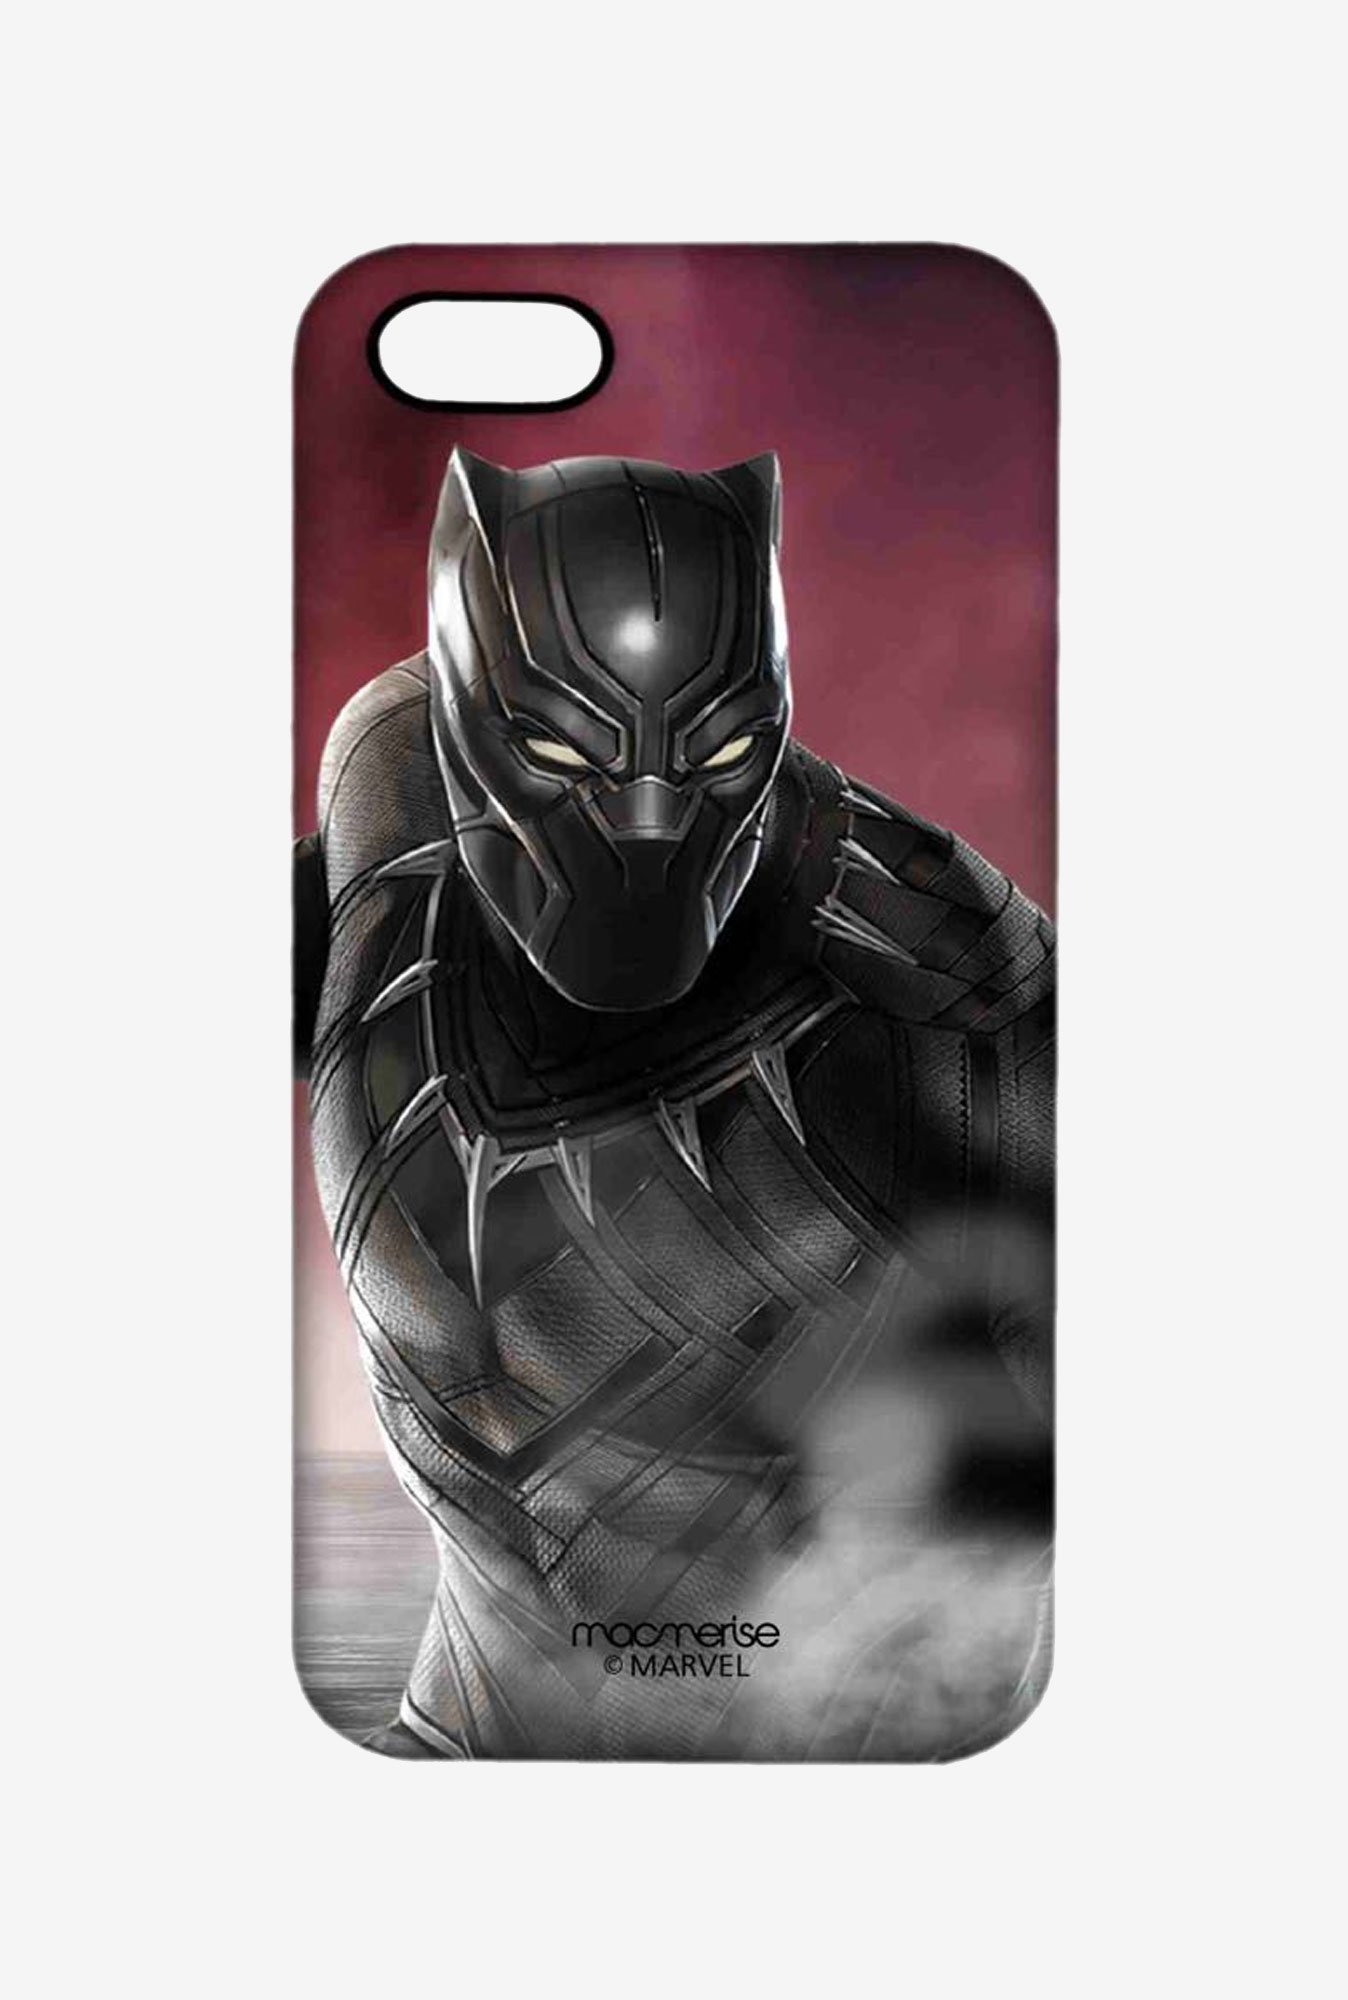 Macmerise Team Red Black Panther Pro Case for iPhone 5/5S